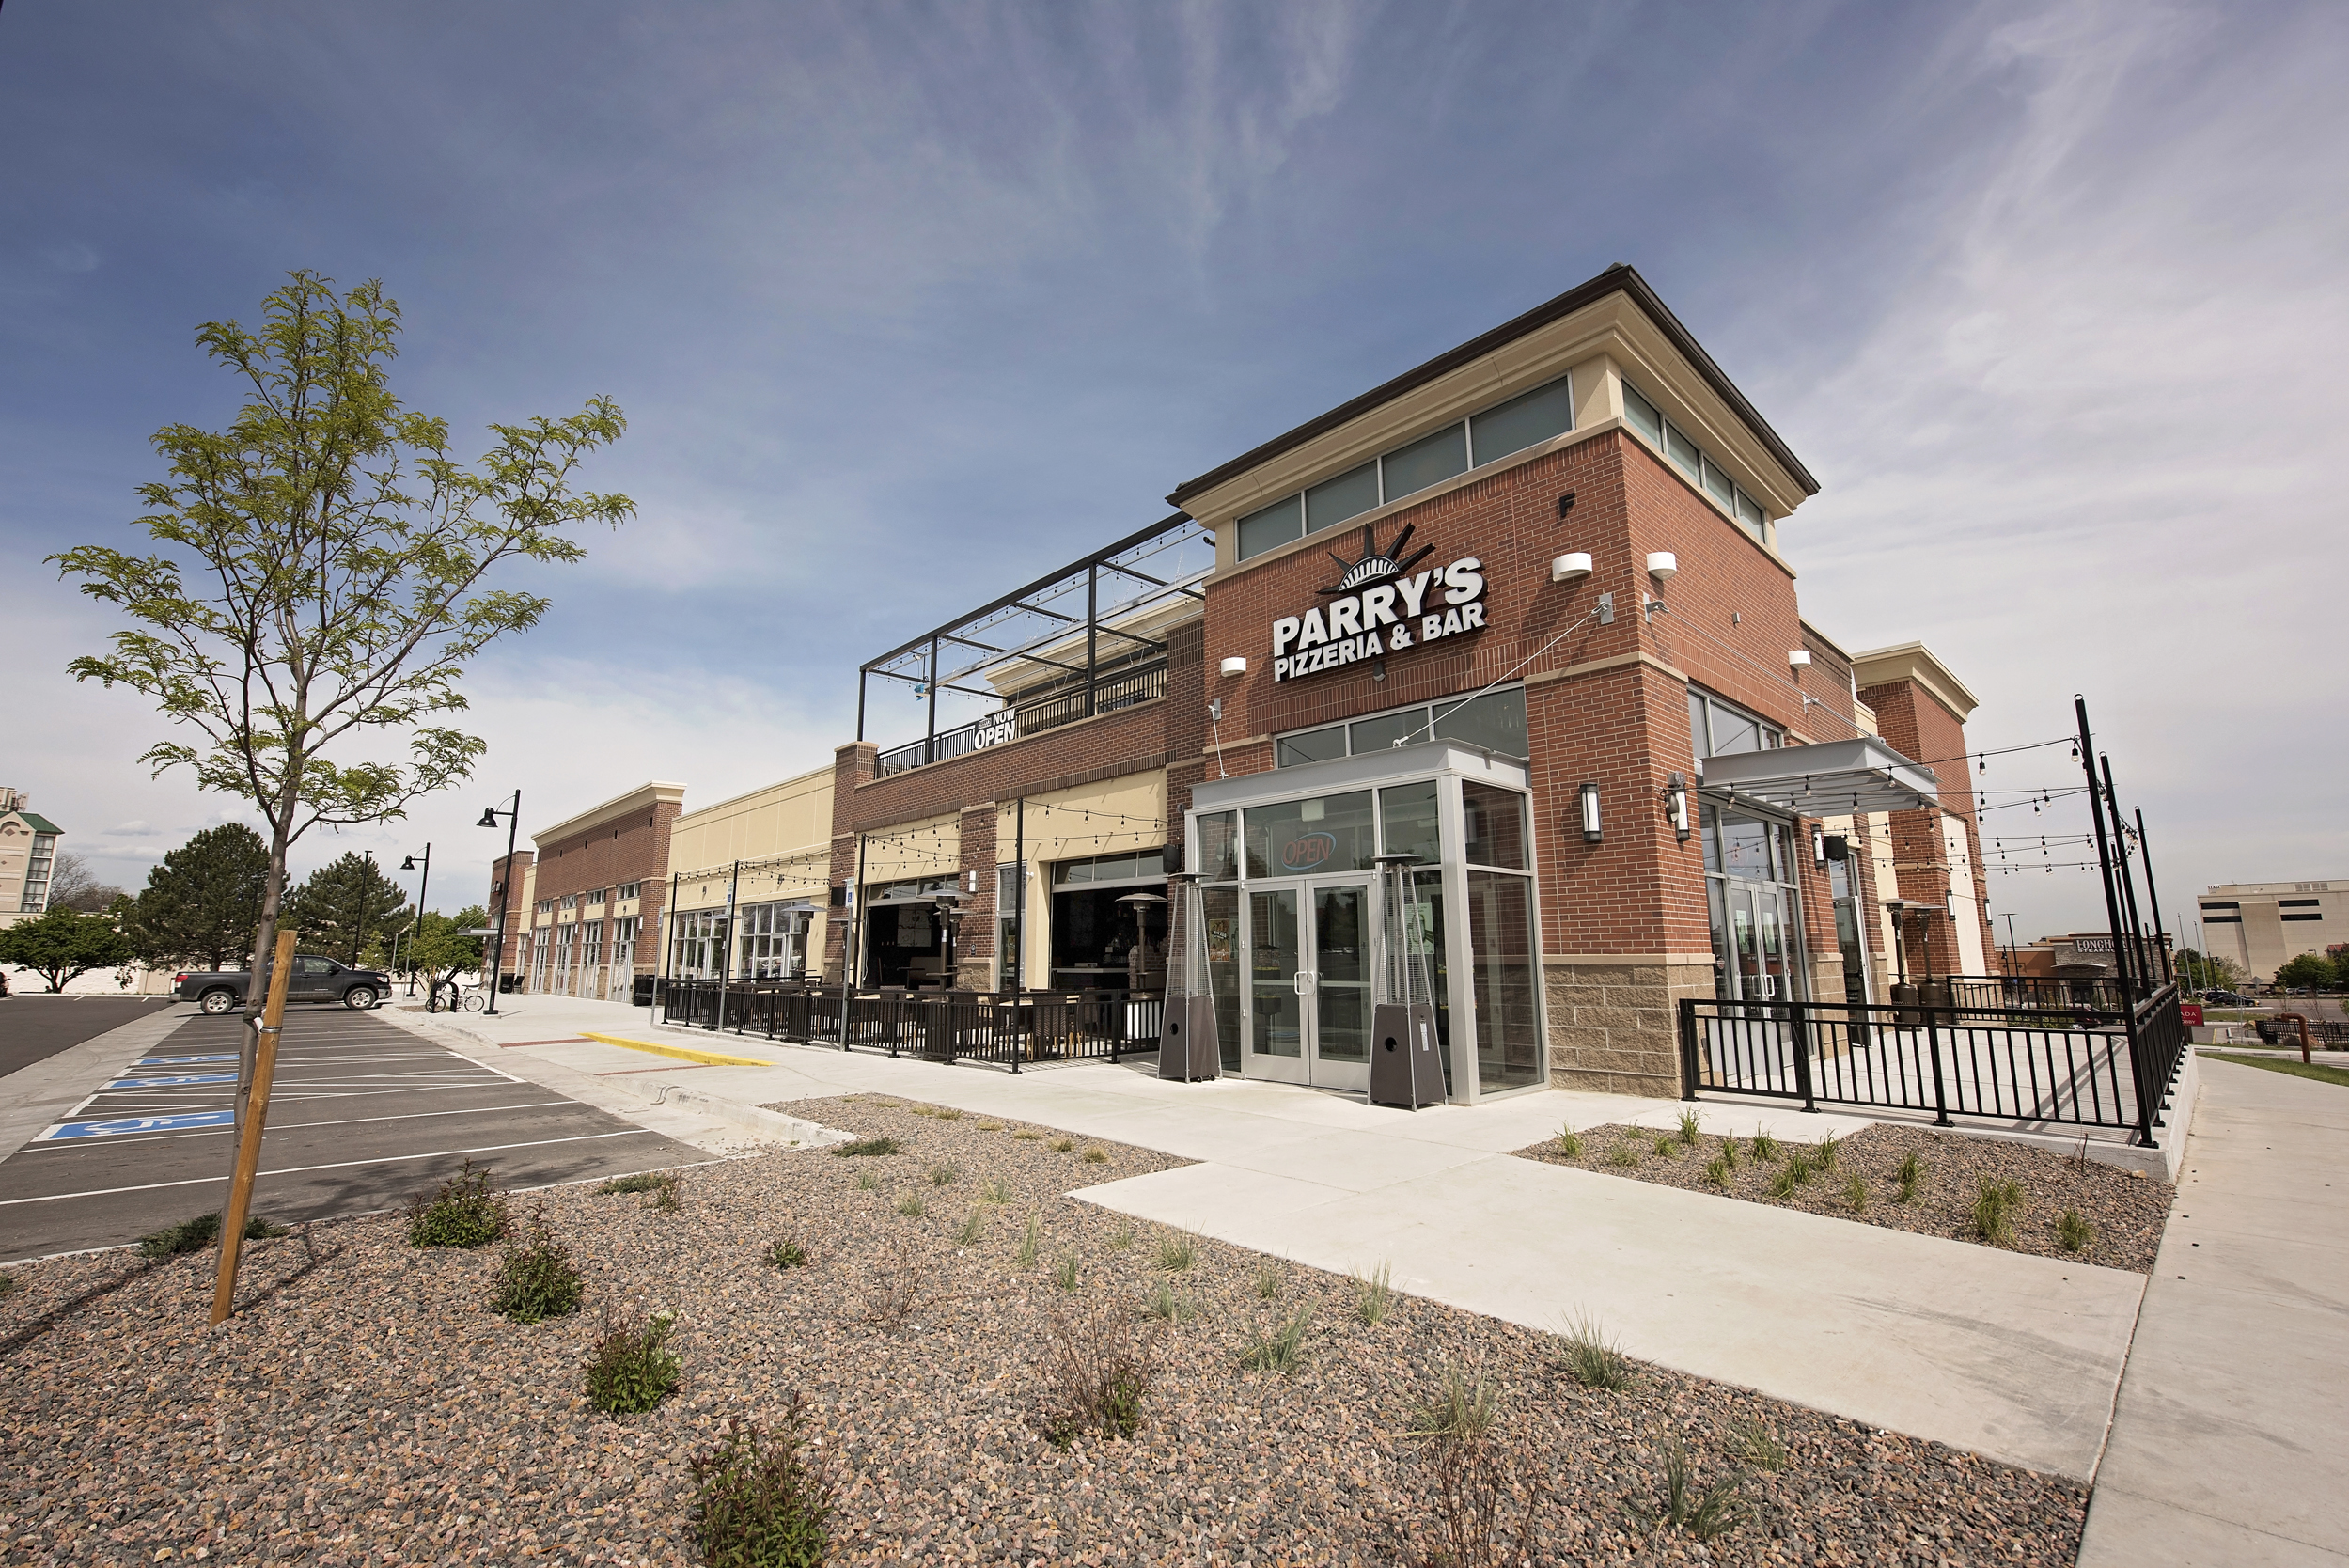 Parry's Pizzeria and Bar | Retail Construction Company